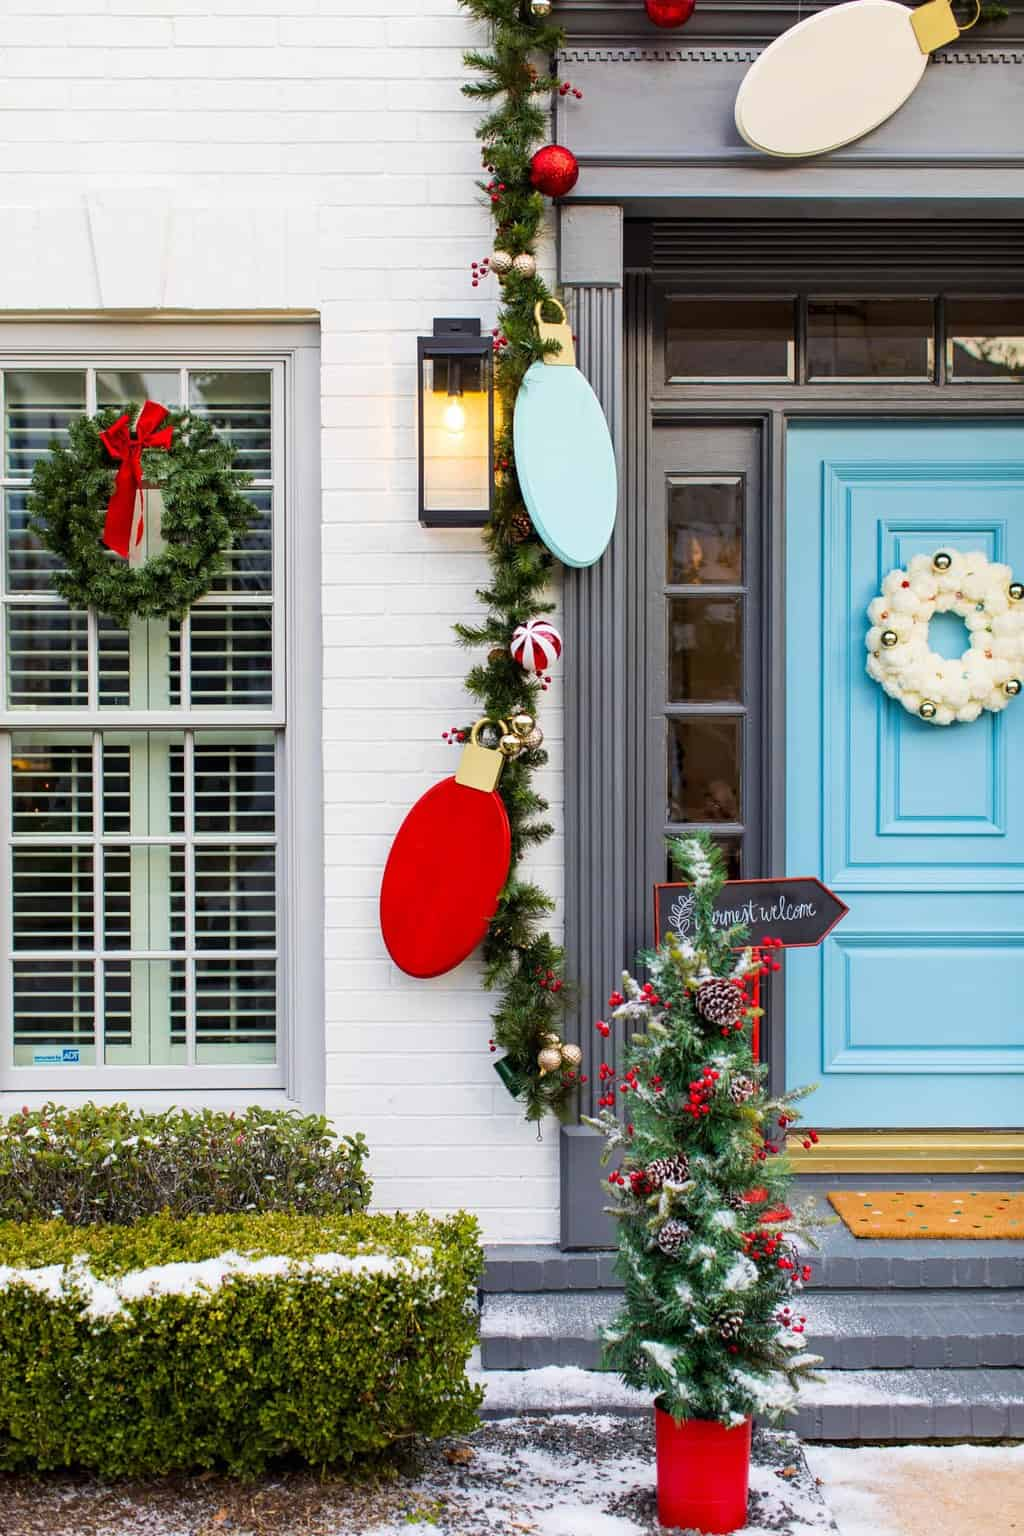 the cutest! Jumbo Lights Outdoor DIY Christmas Decorations! by top Houston lifestyle blogger Ashley Rose of Sugar & Cloth #DIY #howto #christmas #holidays #decorations #decor #home #frontdoor #entrance